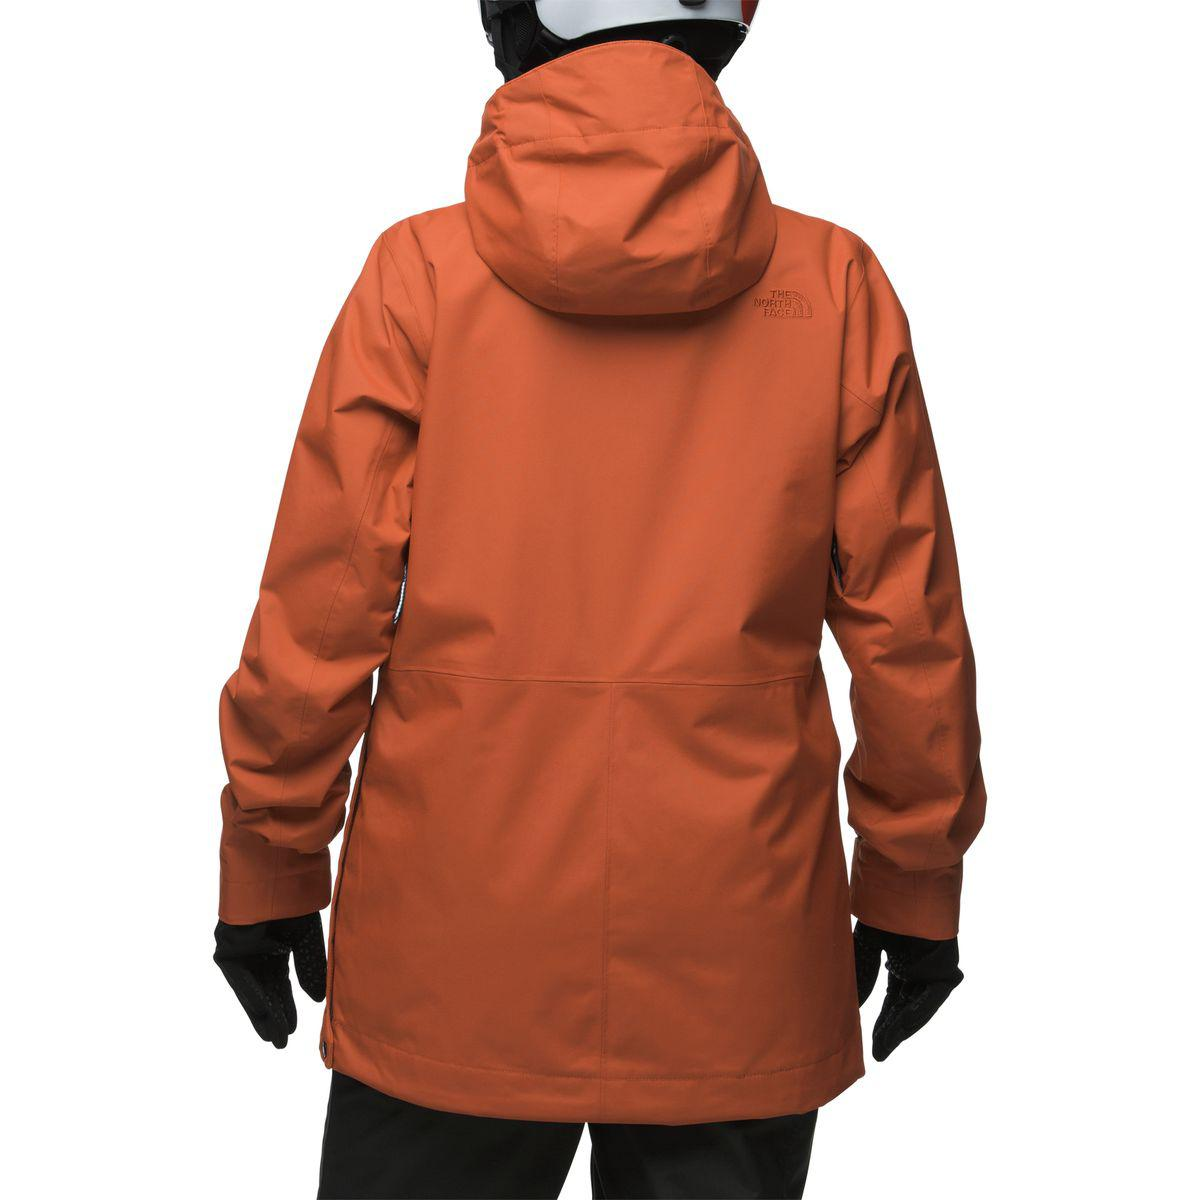 ccf642024 The North Face Multicolor Tanager Anorak Hooded Jacket